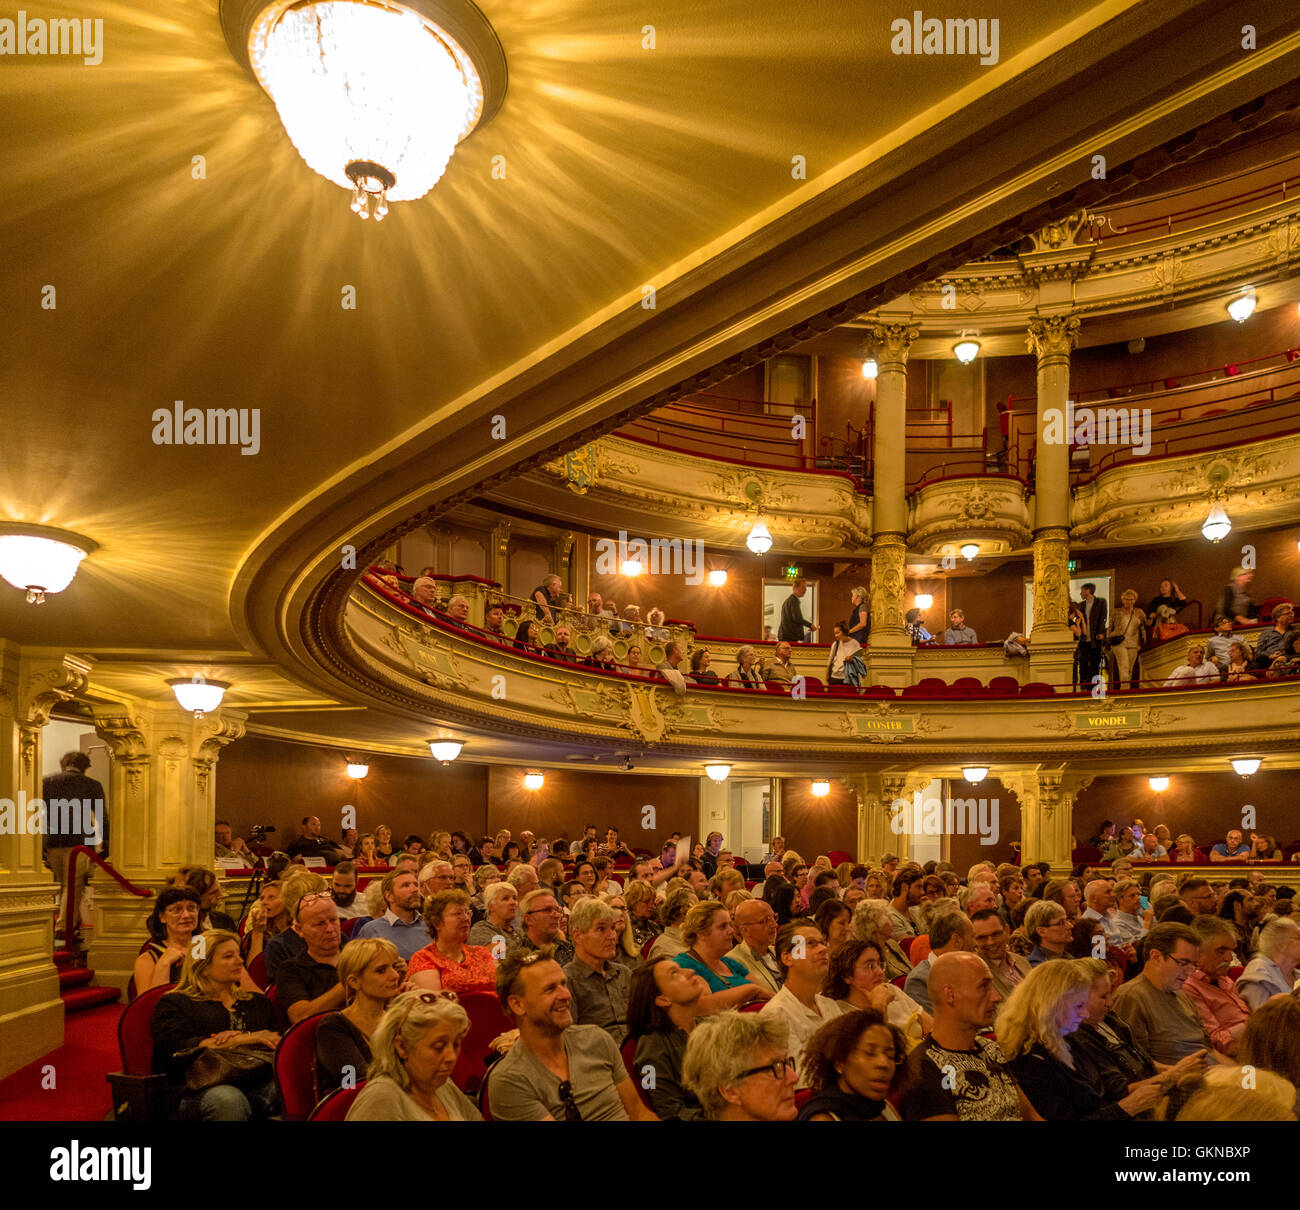 https://c7.alamy.com/comp/GKNBXP/amsterdam-municipal-theater-dutch-stadsschouwburg-interior-with-people-GKNBXP.jpg